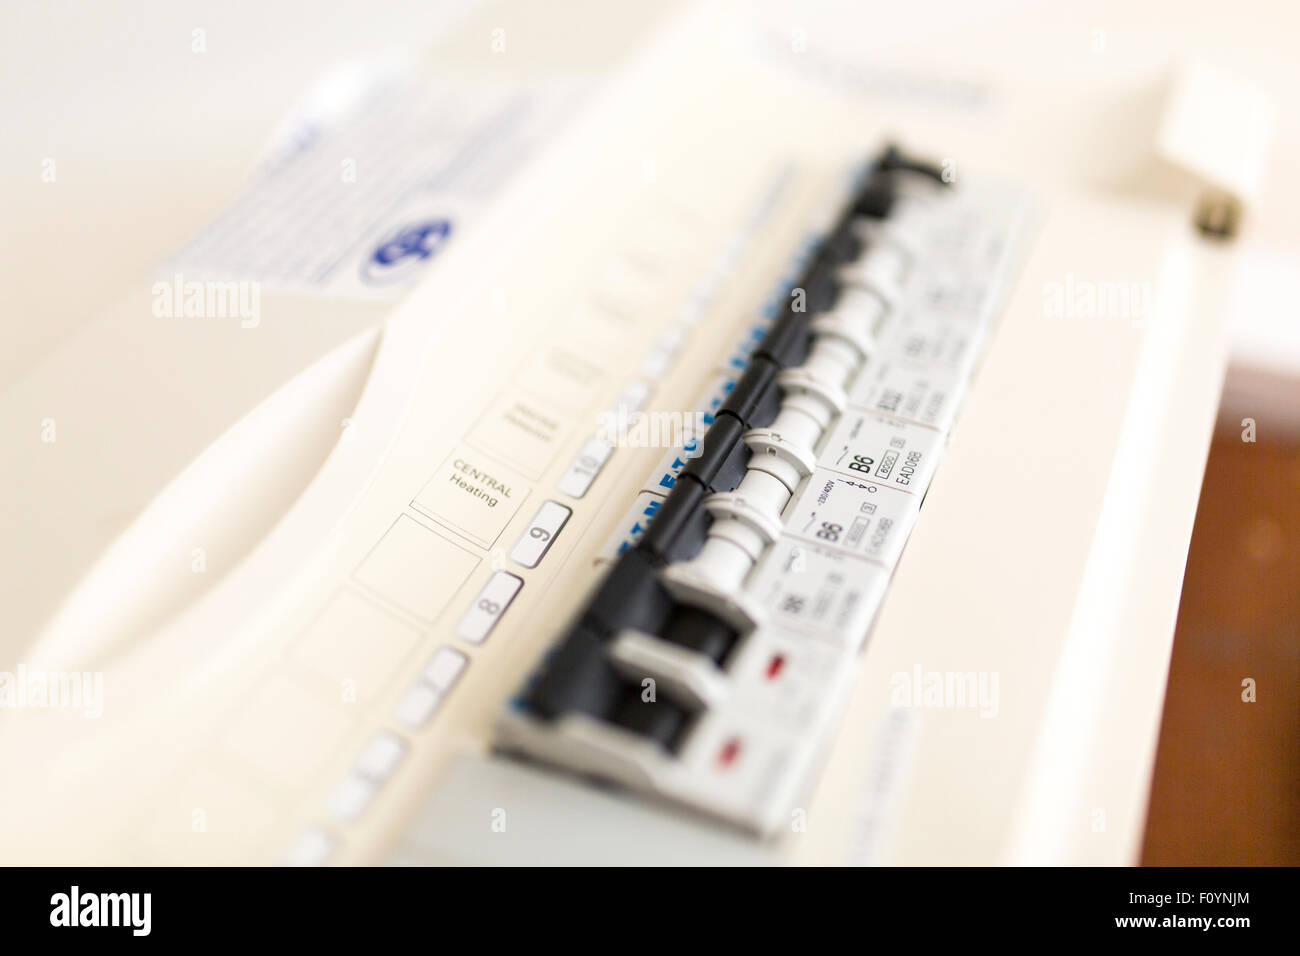 an electricity fuse box - Stock Image